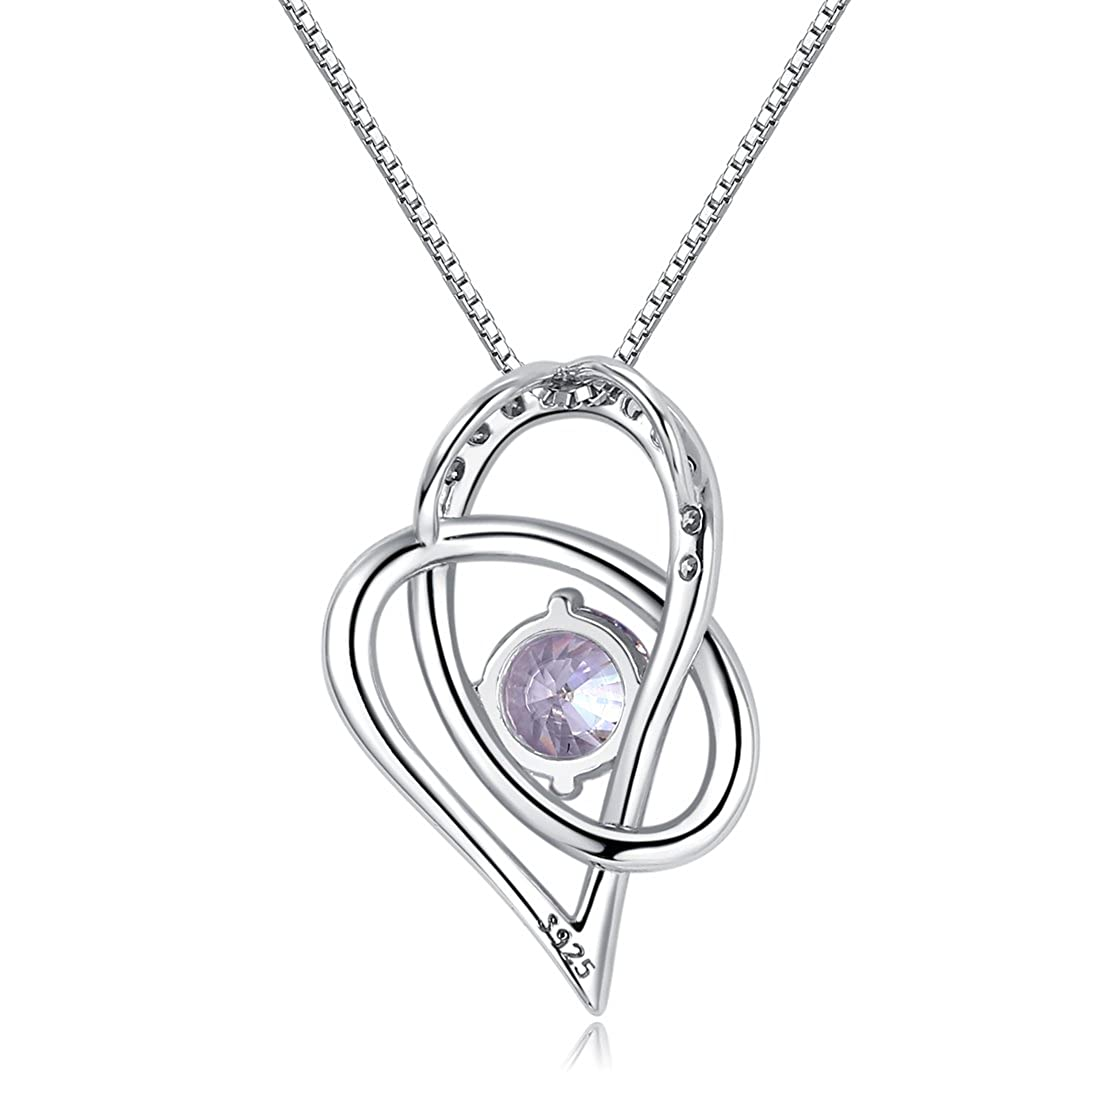 SILVERLUXY Fine Jewelry Sterling Silver Heart in Love Charm Pendant Necklace 18 inches